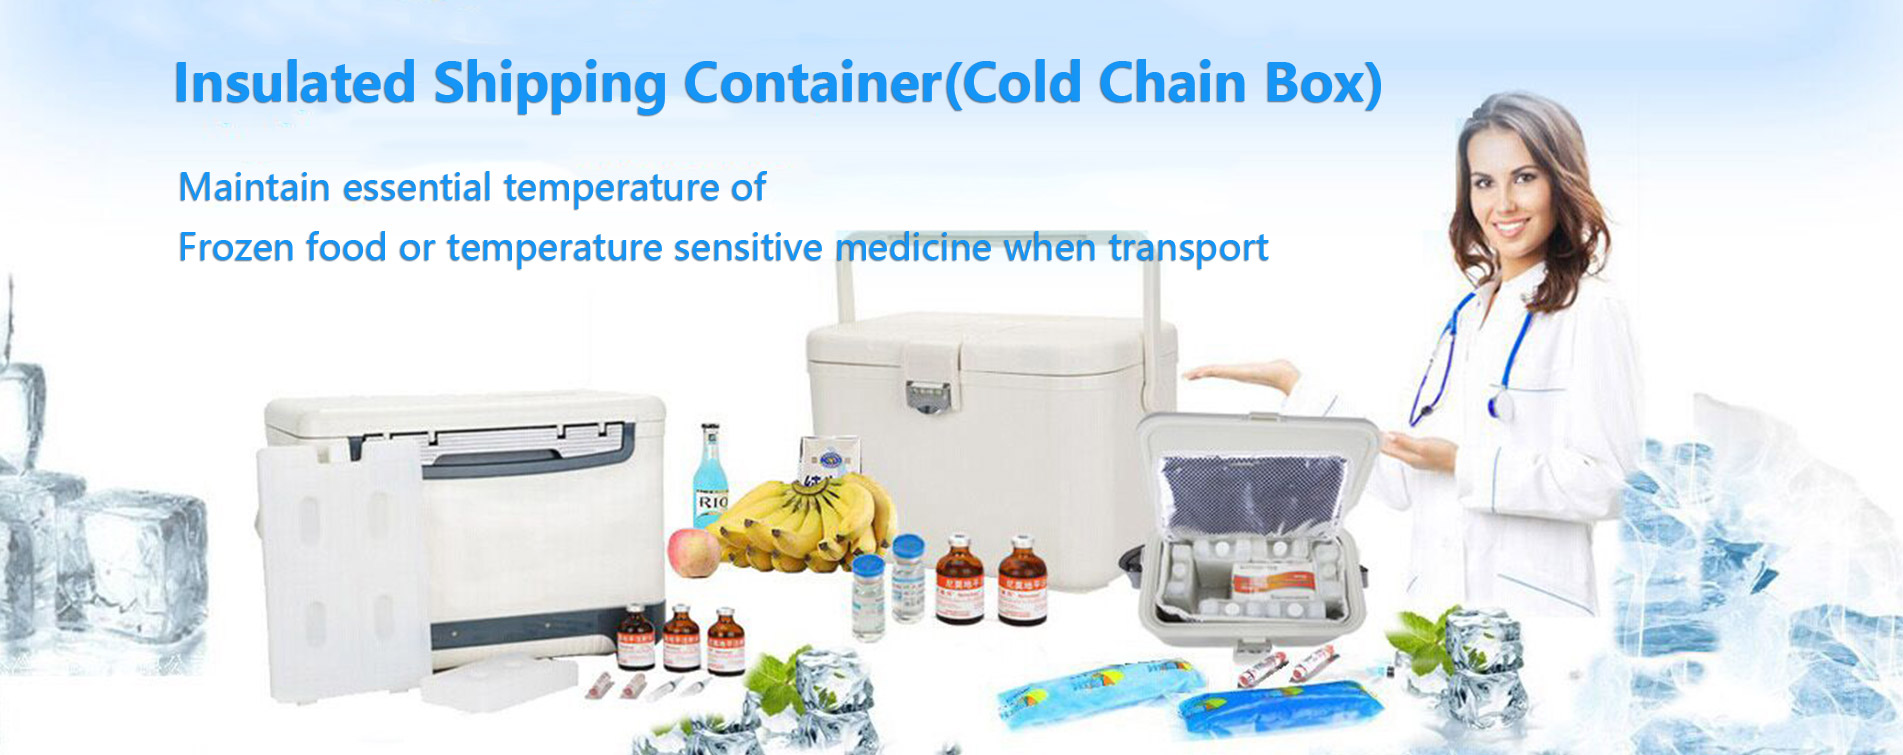 Insulated Shipping Container, Cold Chain Box